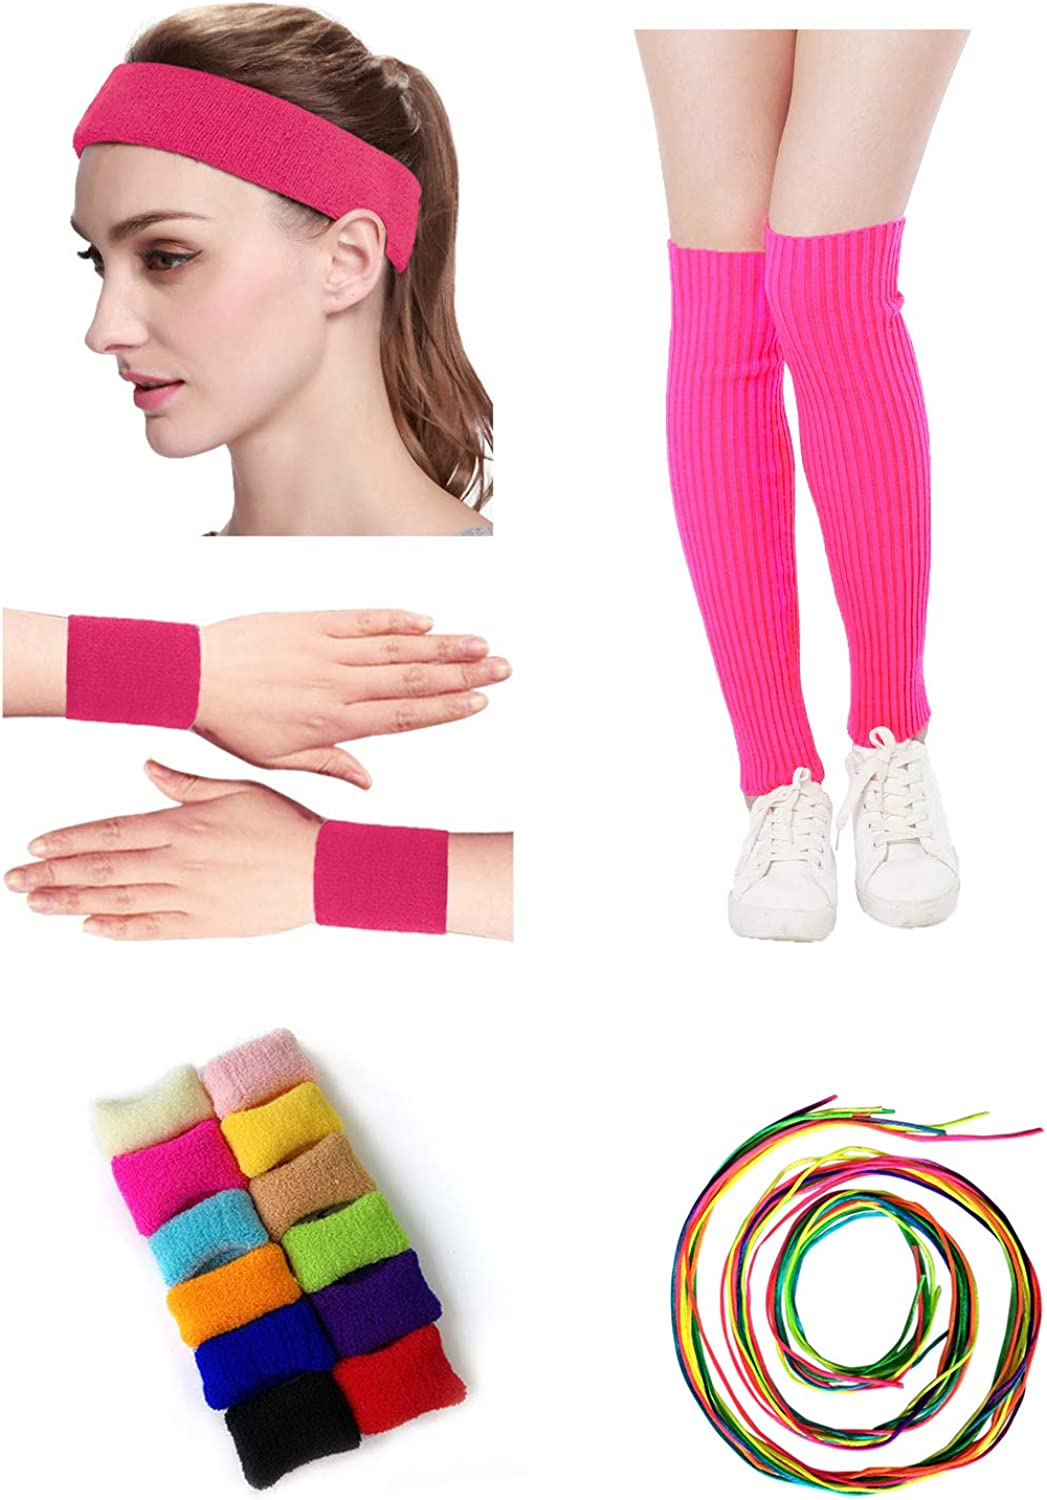 Kimberly's Knit Women Neon 80s Leg Warmers Headband Wristbands Set and Colorful Hair Rope for Party